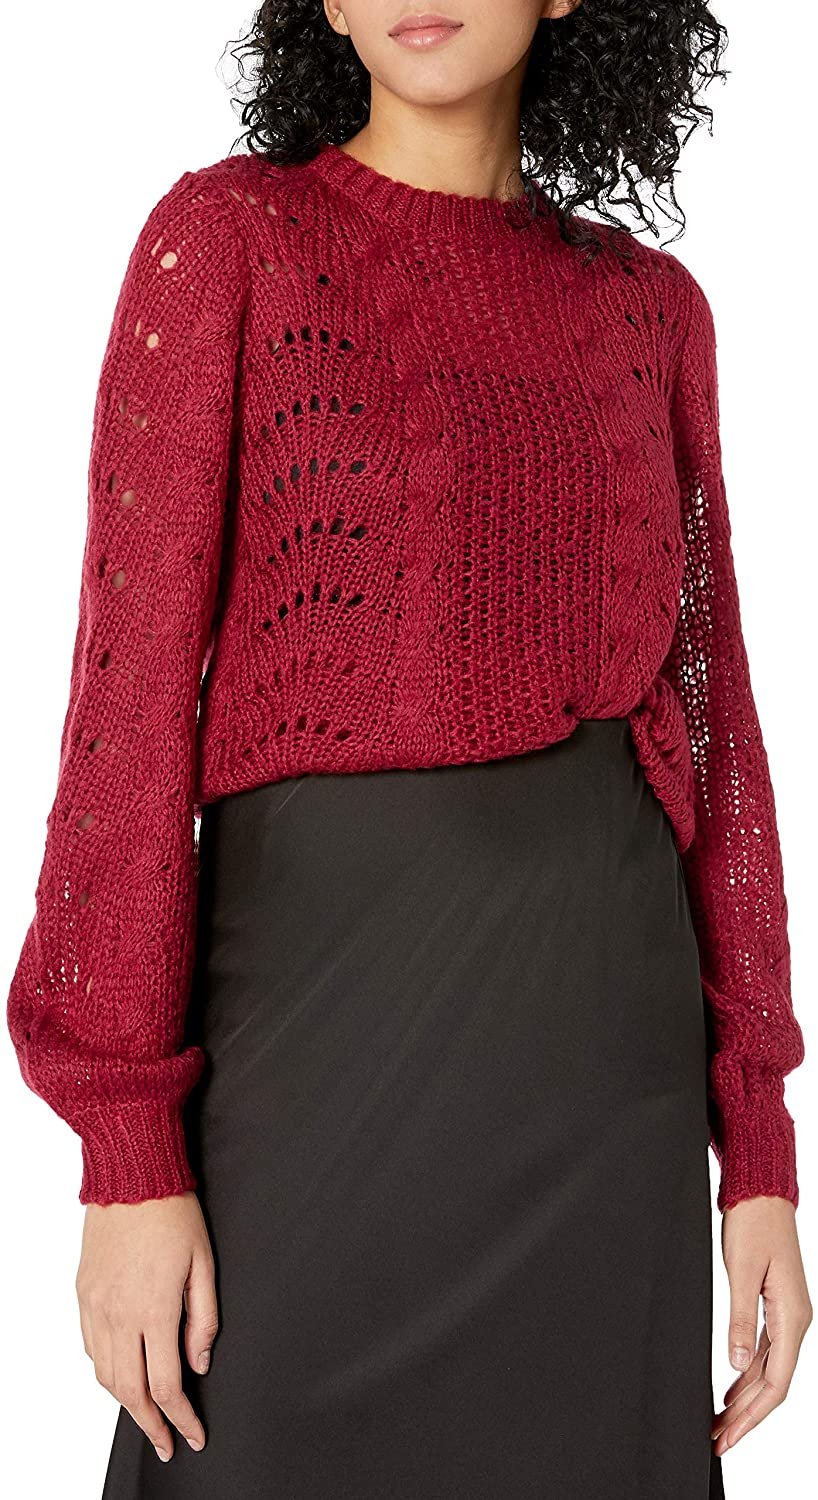 Plus Size Knit Ensemble 06